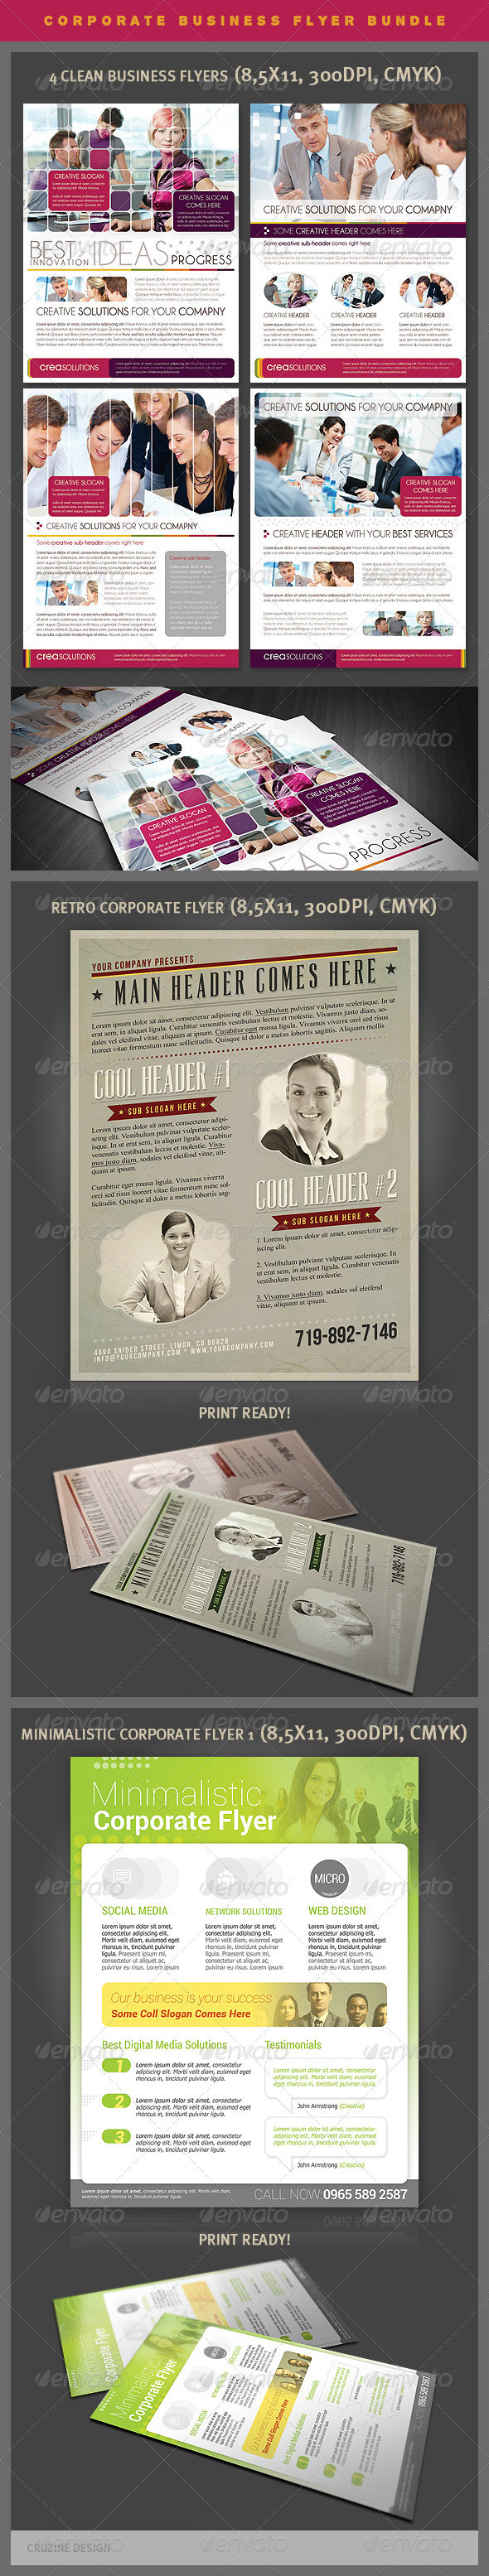 GraphicRiver Corporate Business Flyers Bundle 4009270